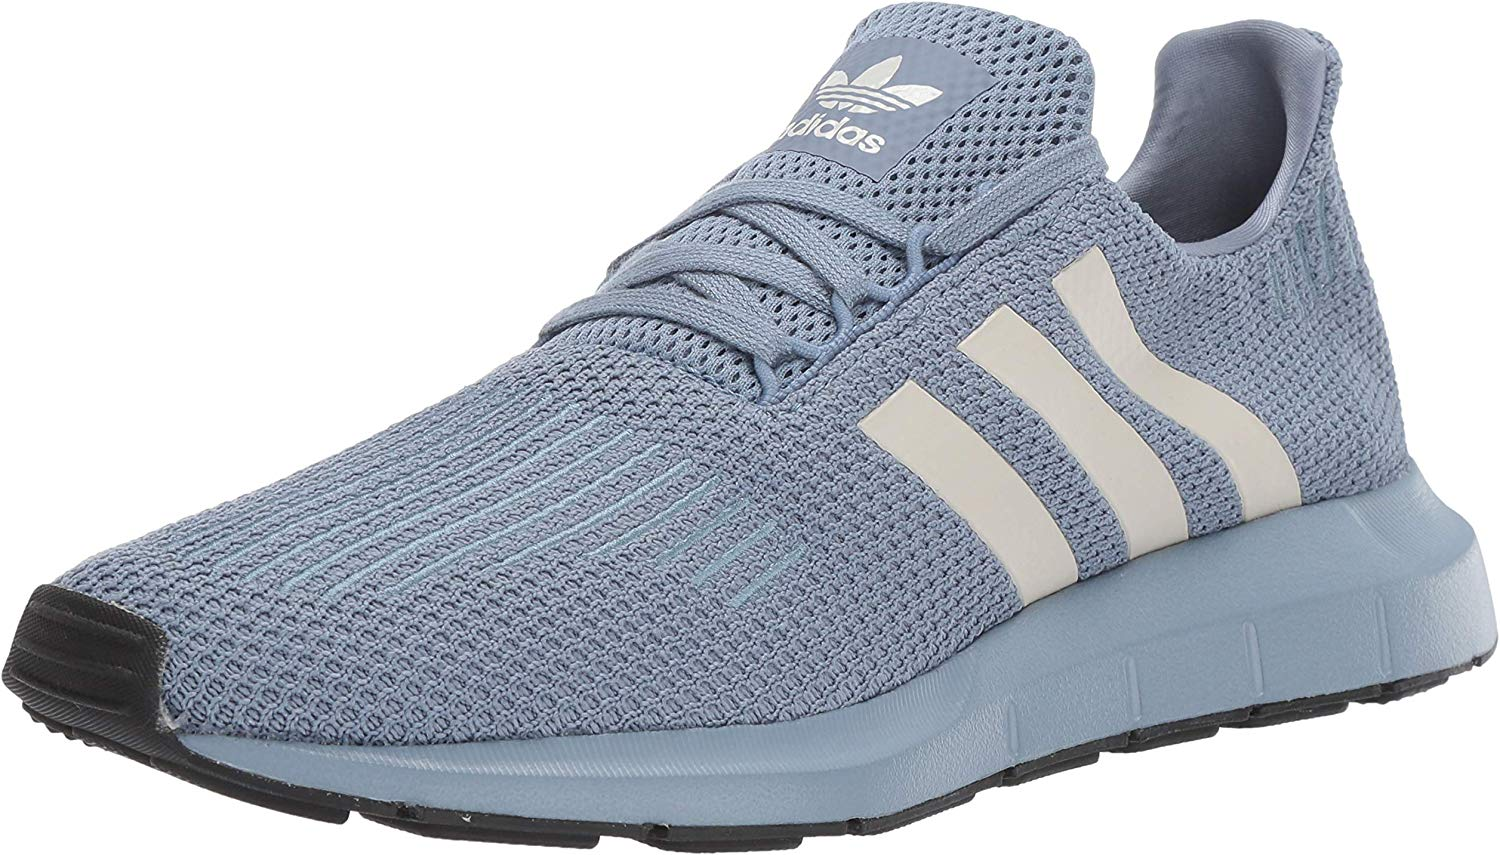 Adidas Originals Men's Swift correrening sautope, raw grigio Chalk Pearl nero, 13 M US